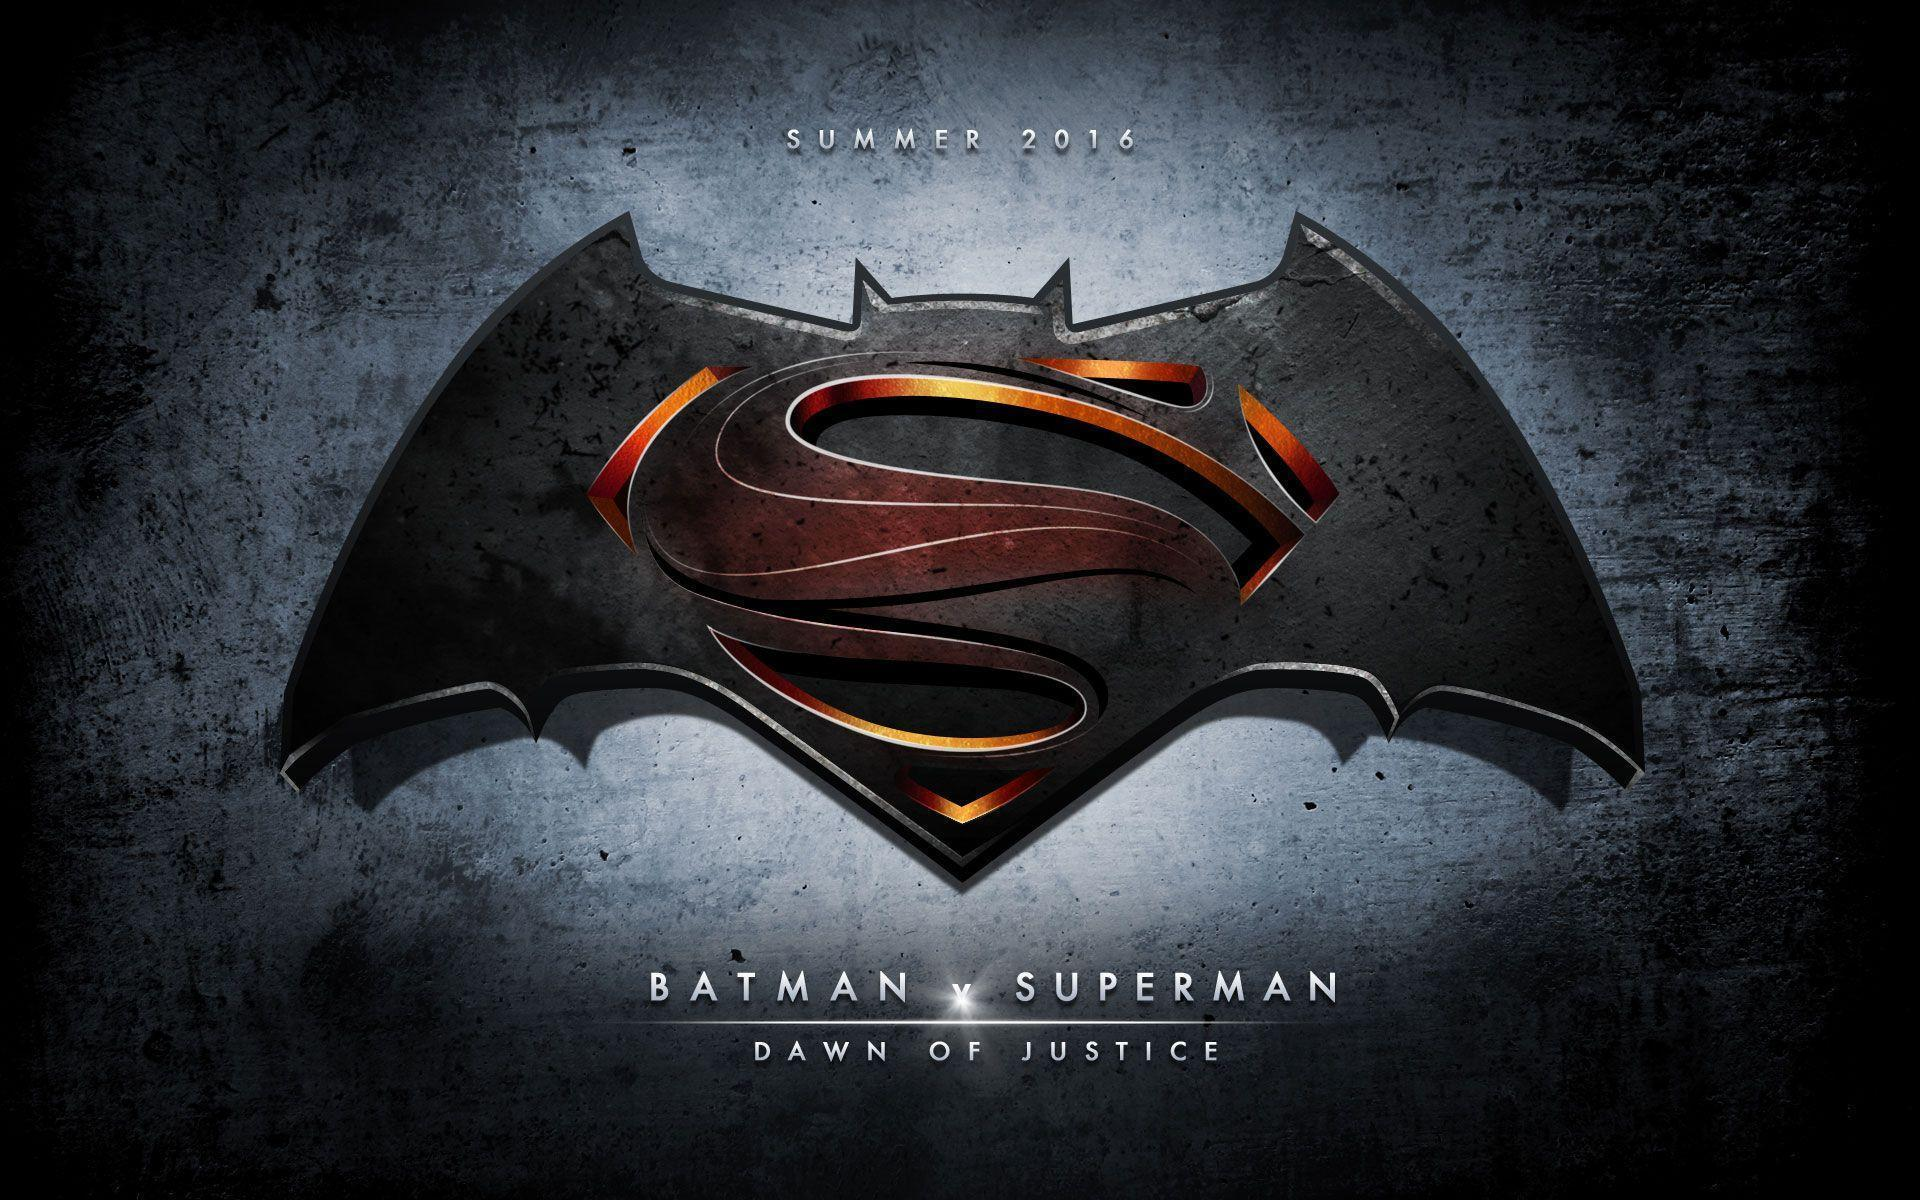 Batman Vs Superman Dawn Of Justice 2016 IPhone Desktop